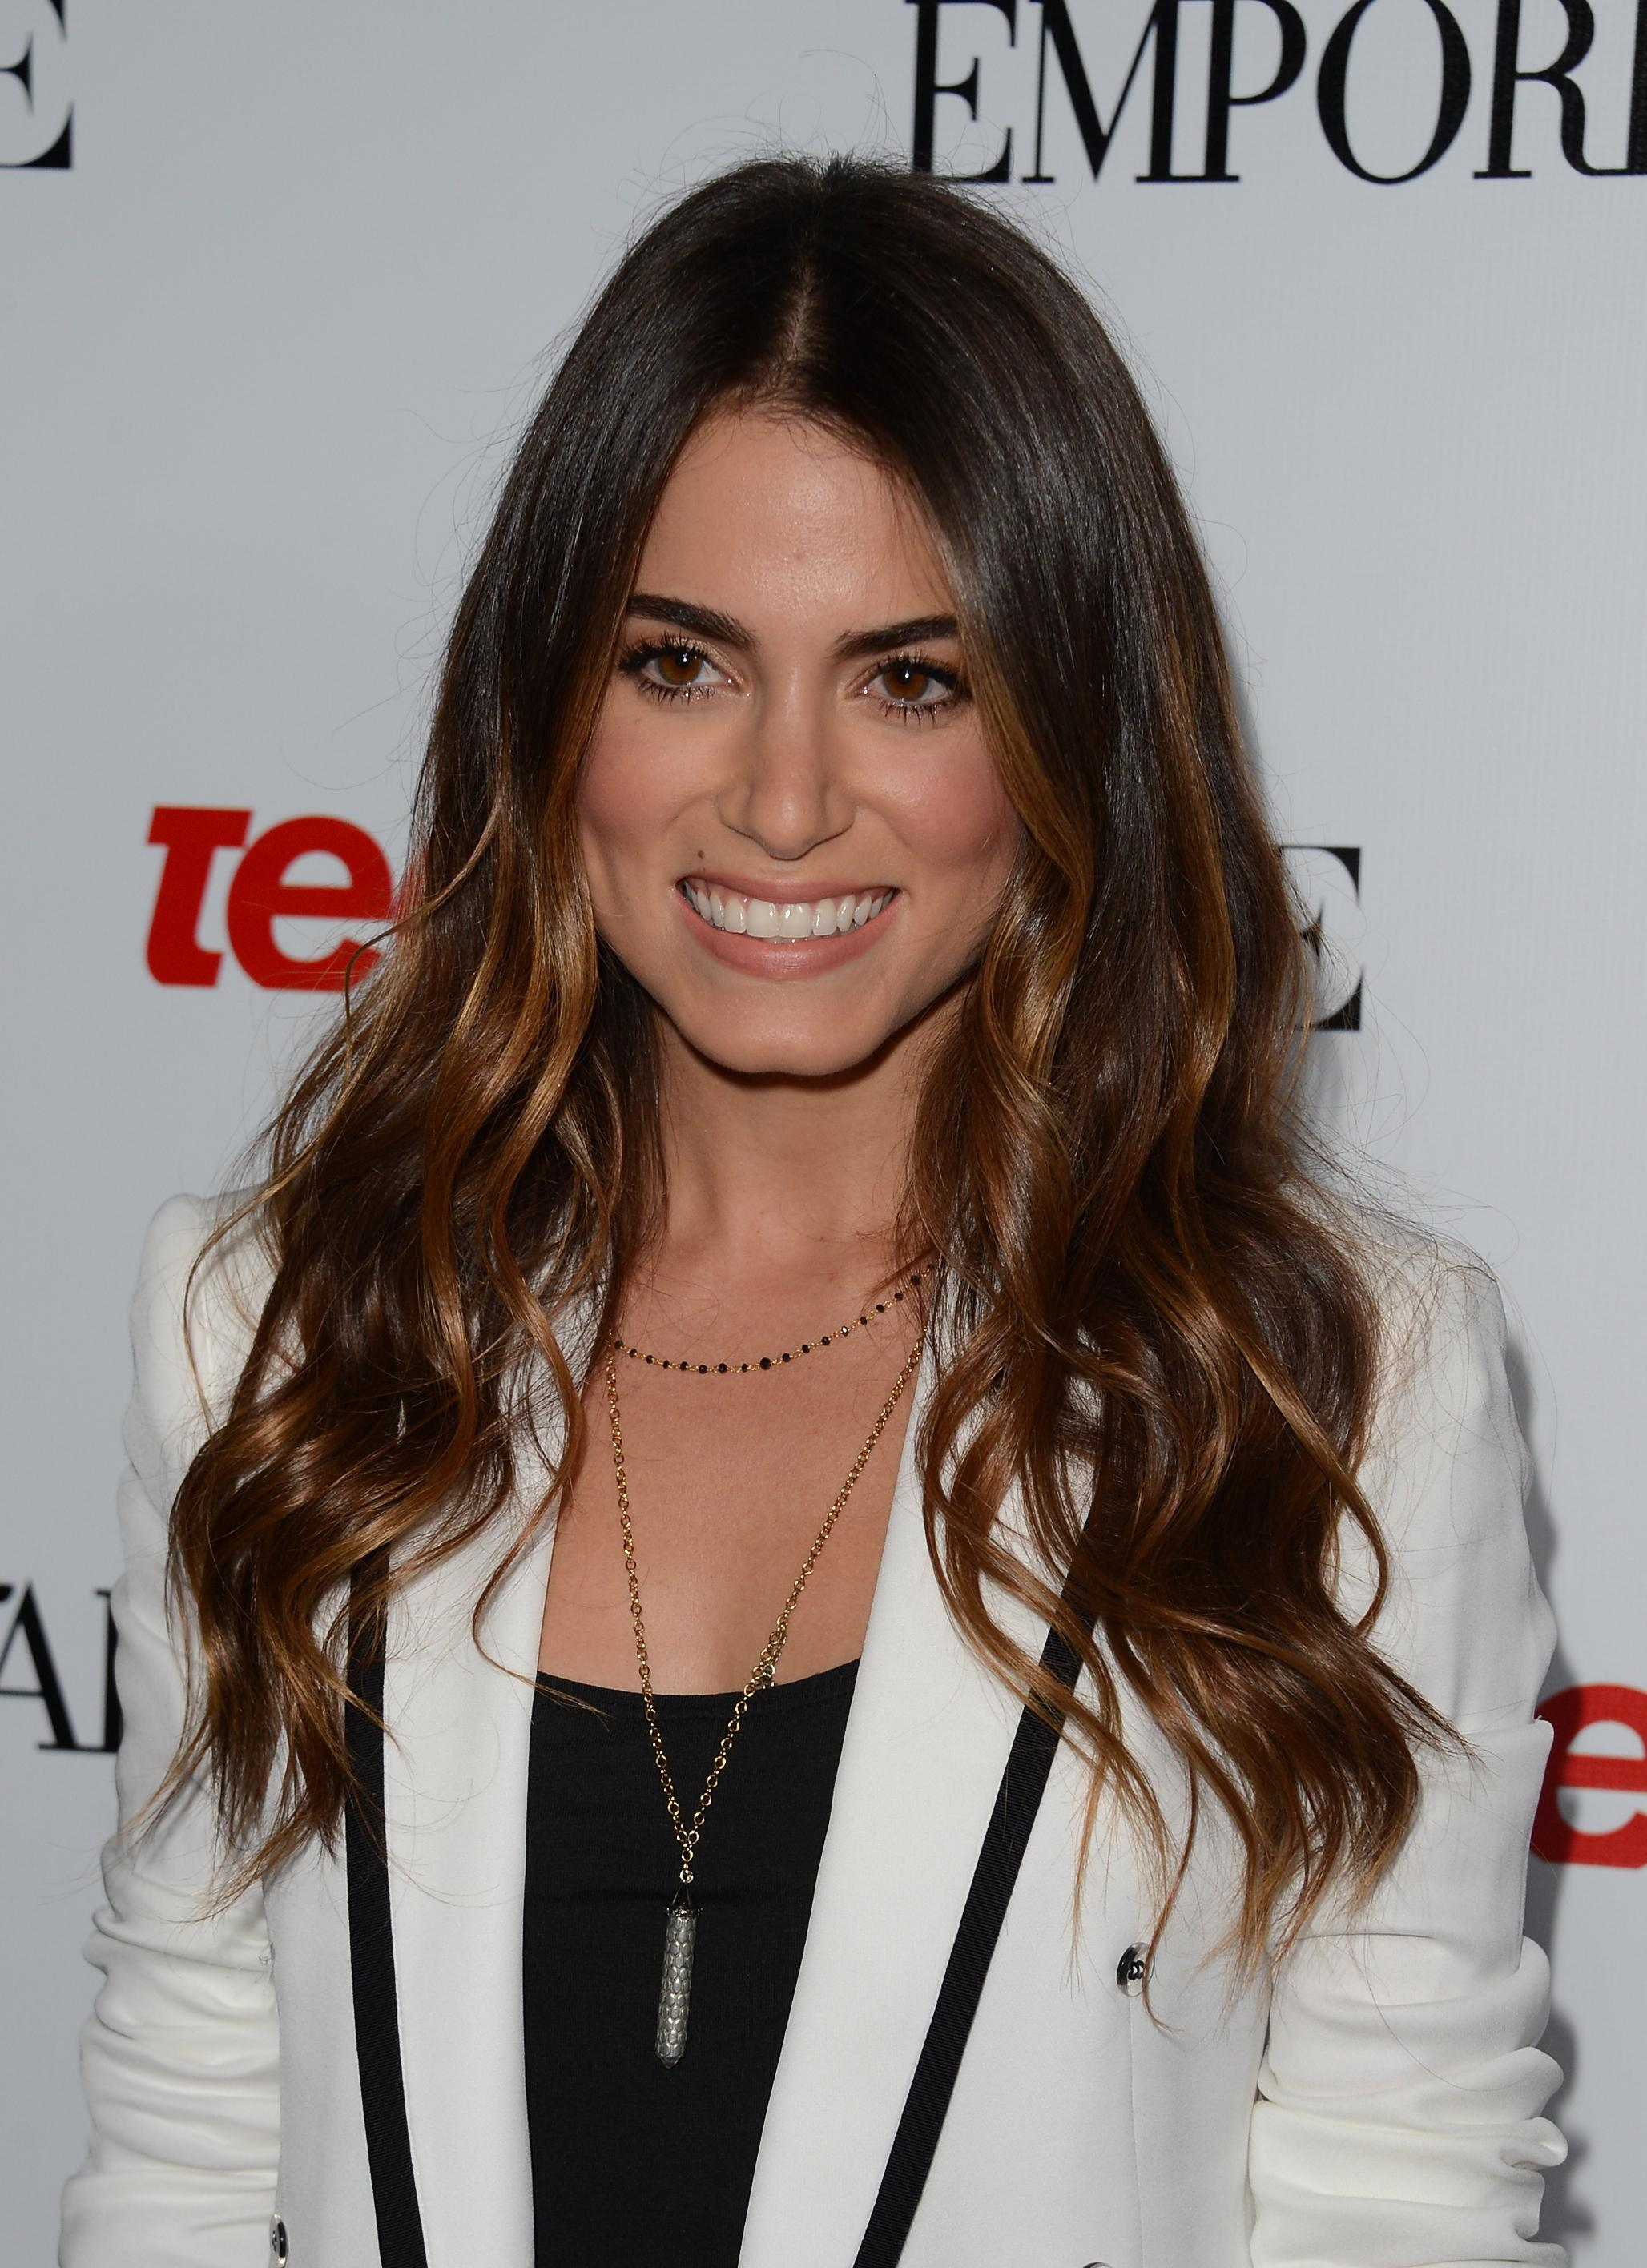 993384705_Nikki_Reed_Teen_Vogues_10th_Annual_Young3_122_544lo.jpg